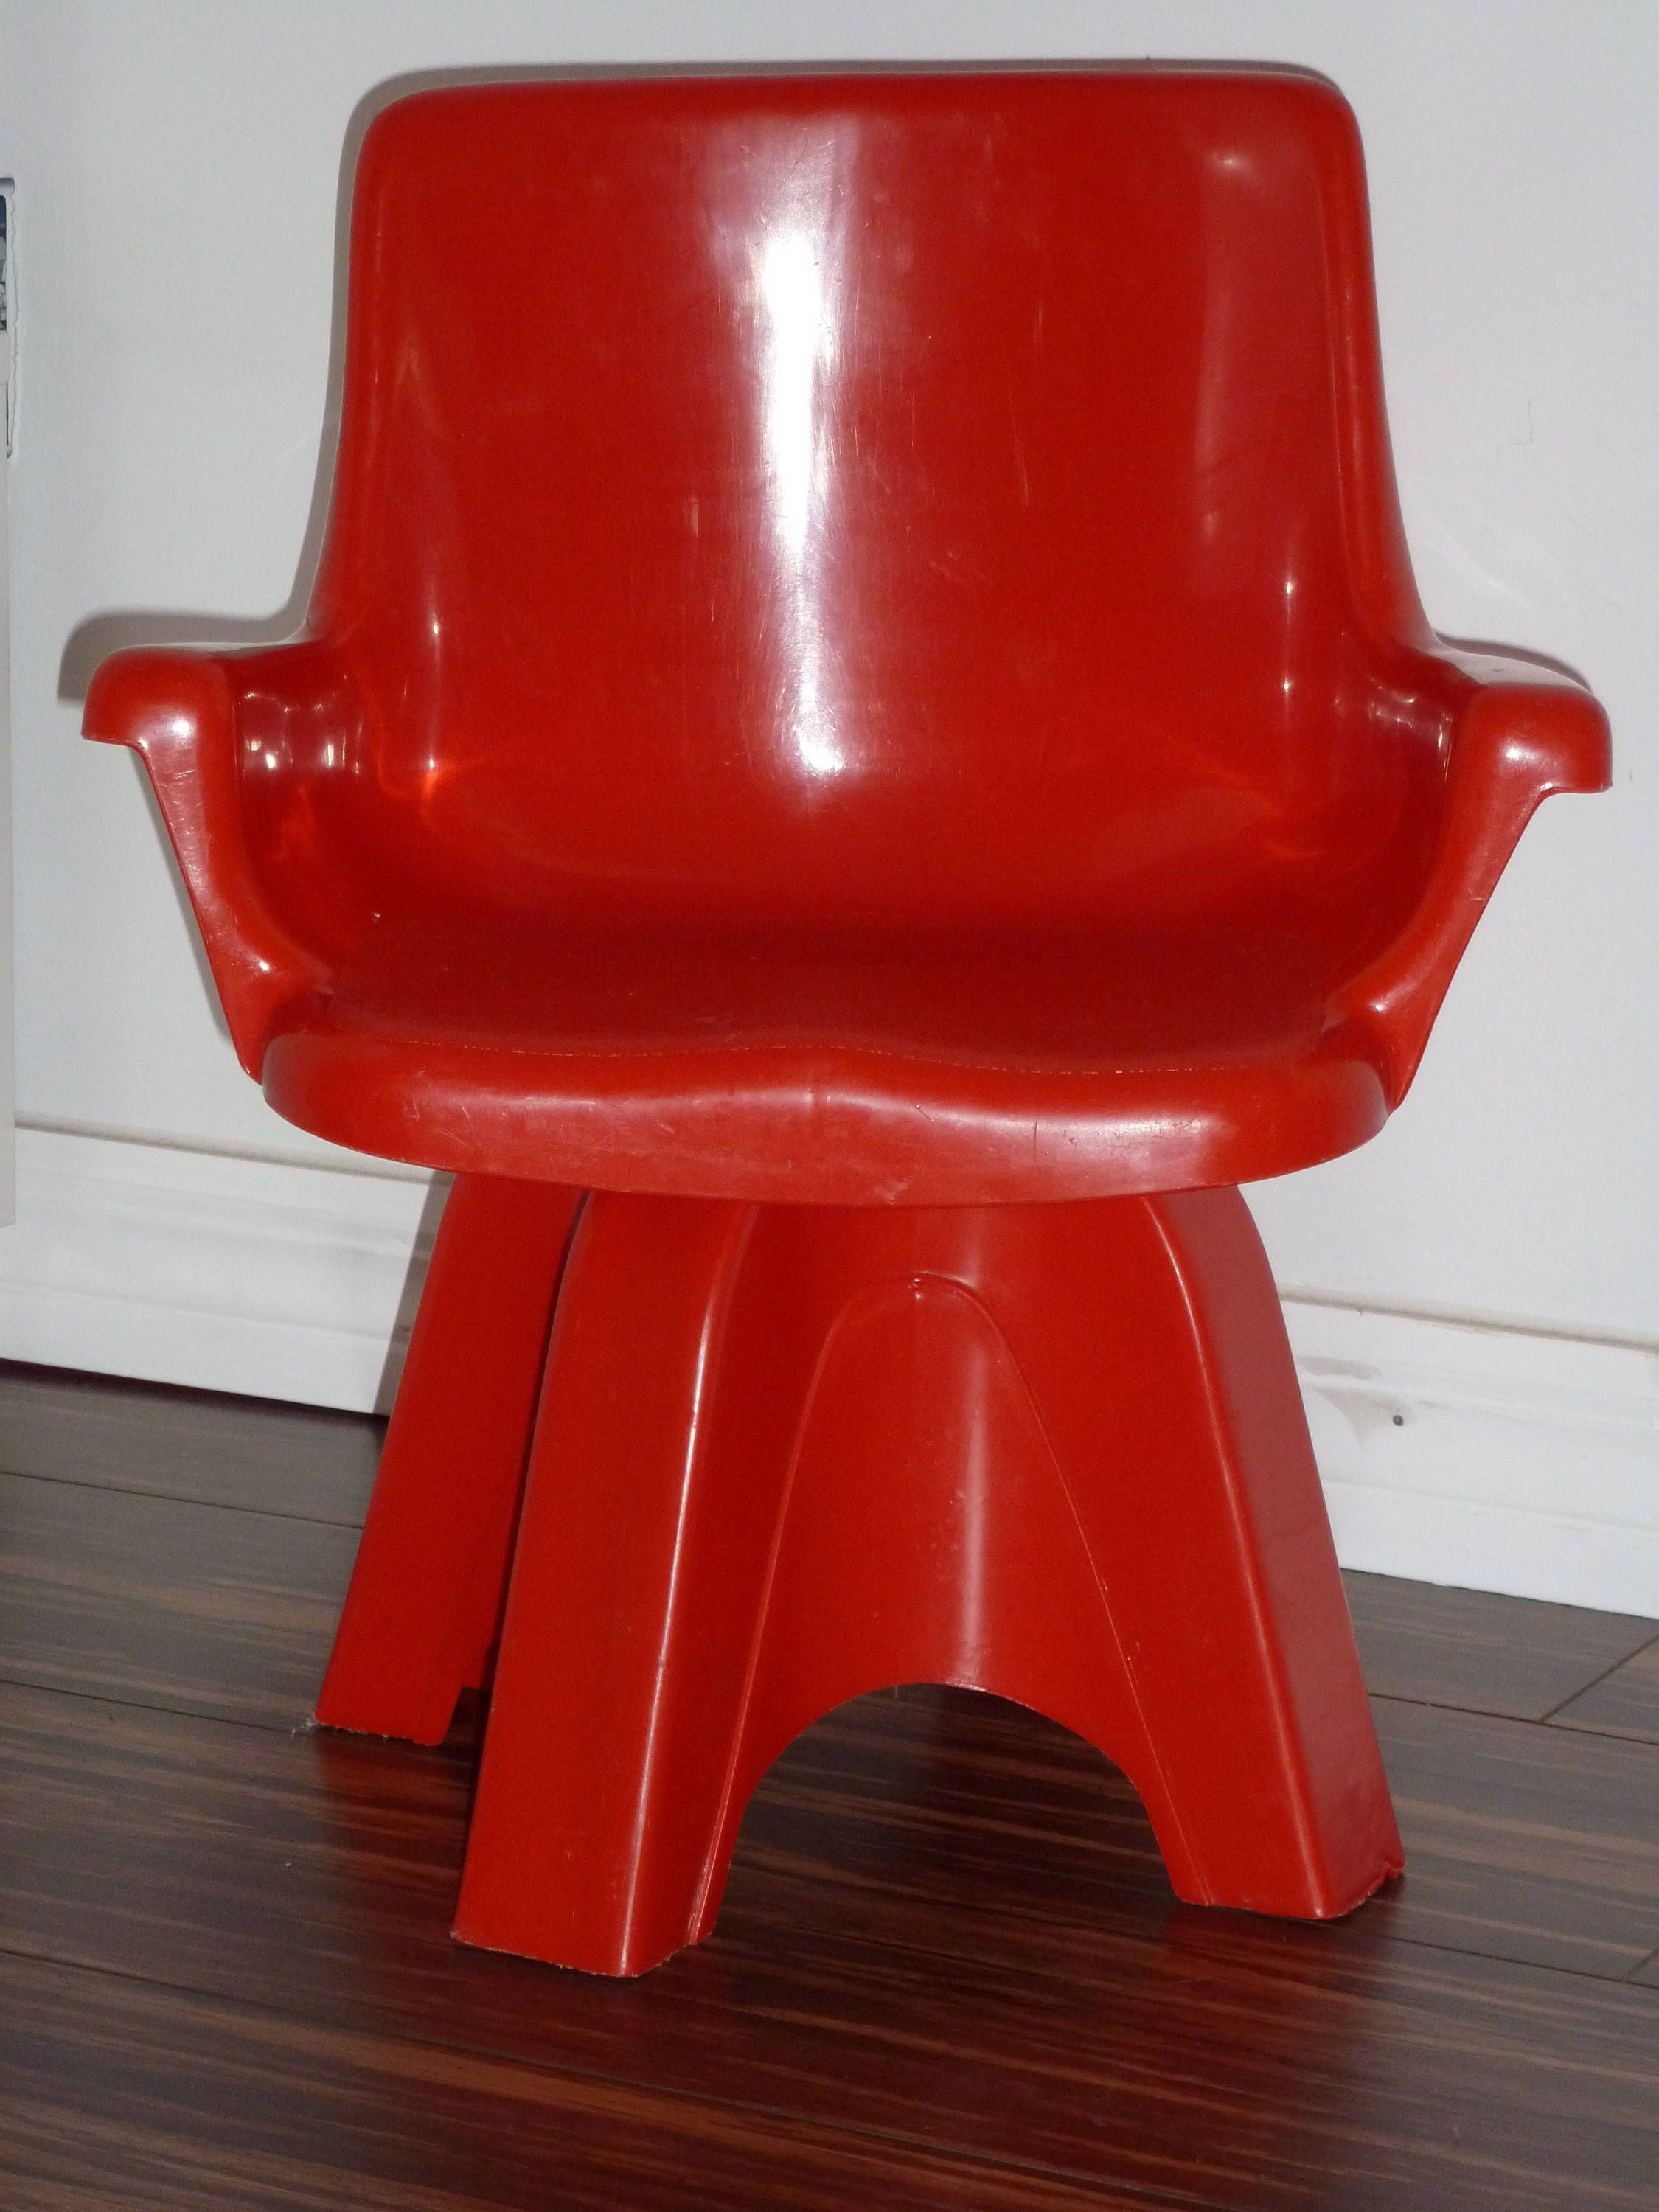 Clearance sale rare vintage red modern swivel chair for